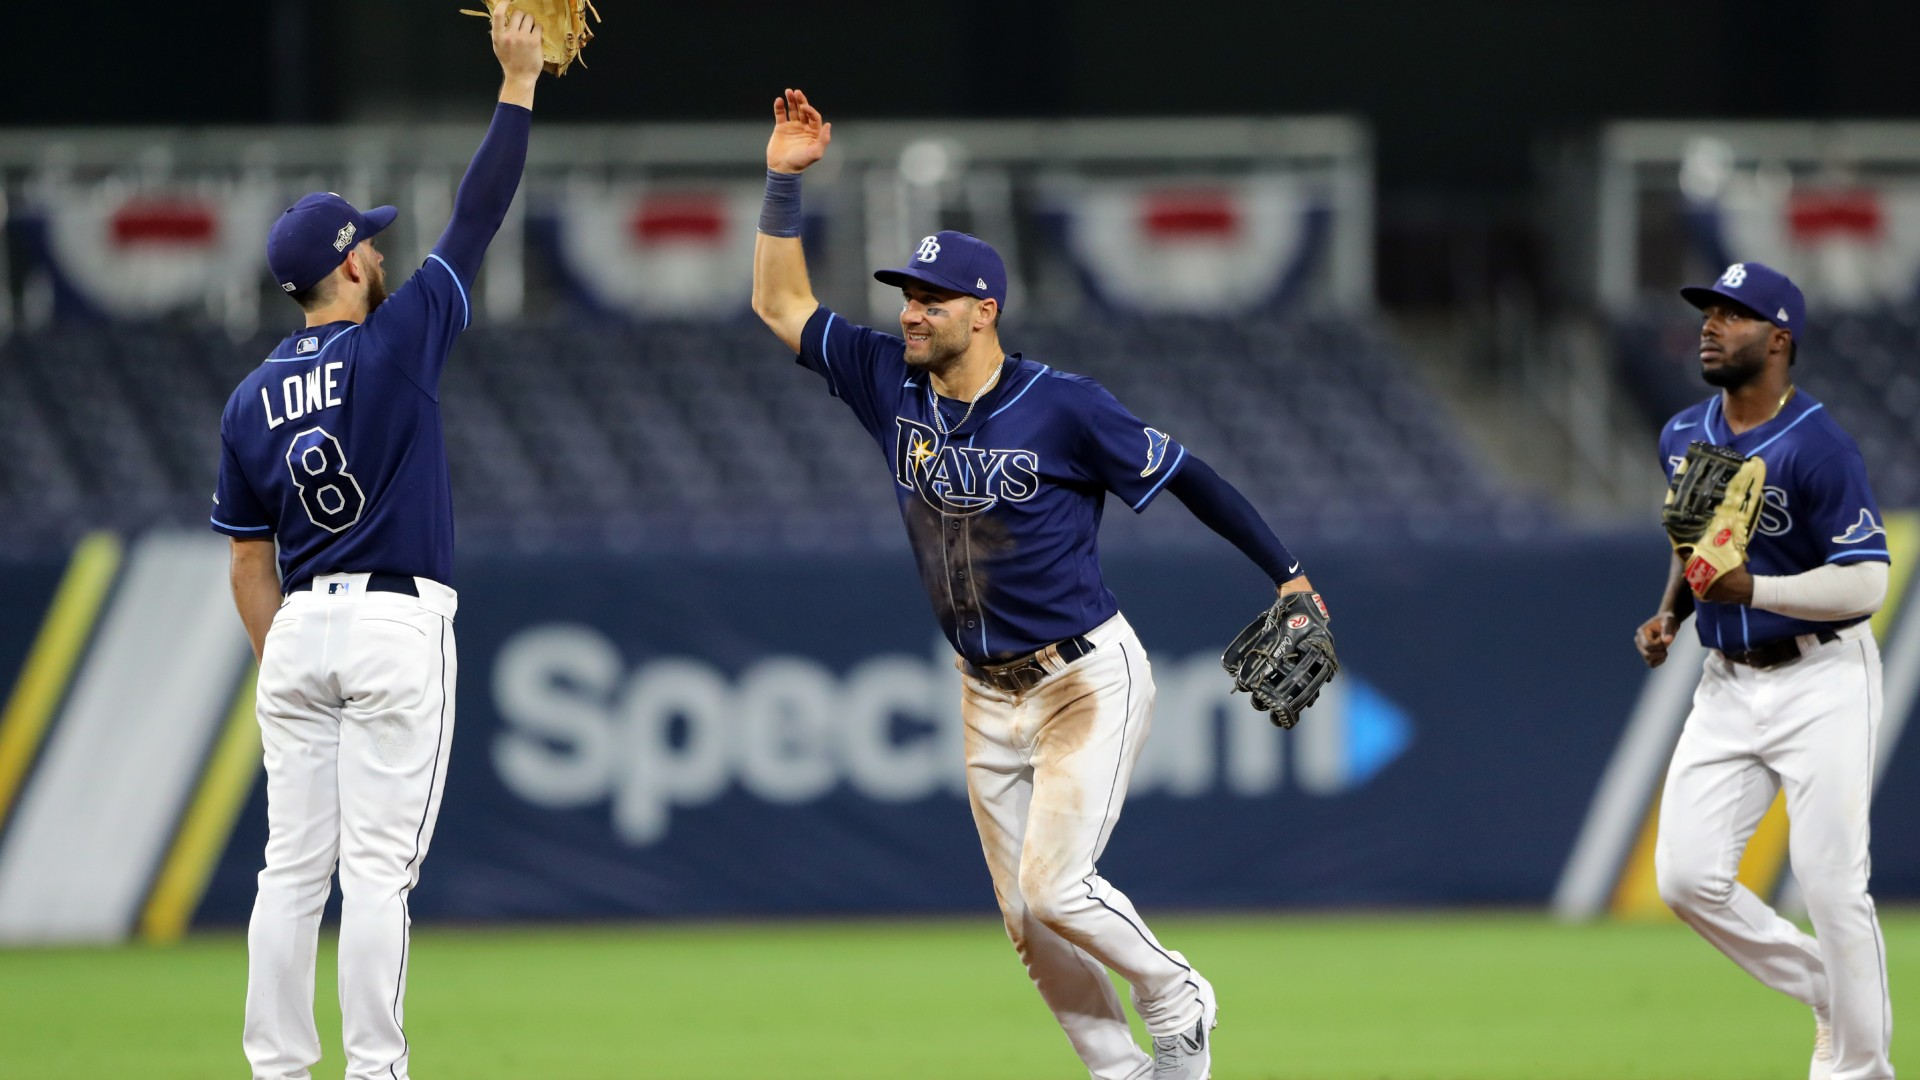 The American League's number one seed Tampa Bay Rays bounced back to hammer four home runs past the New York Yankees in a 7-5 ALDS victory.